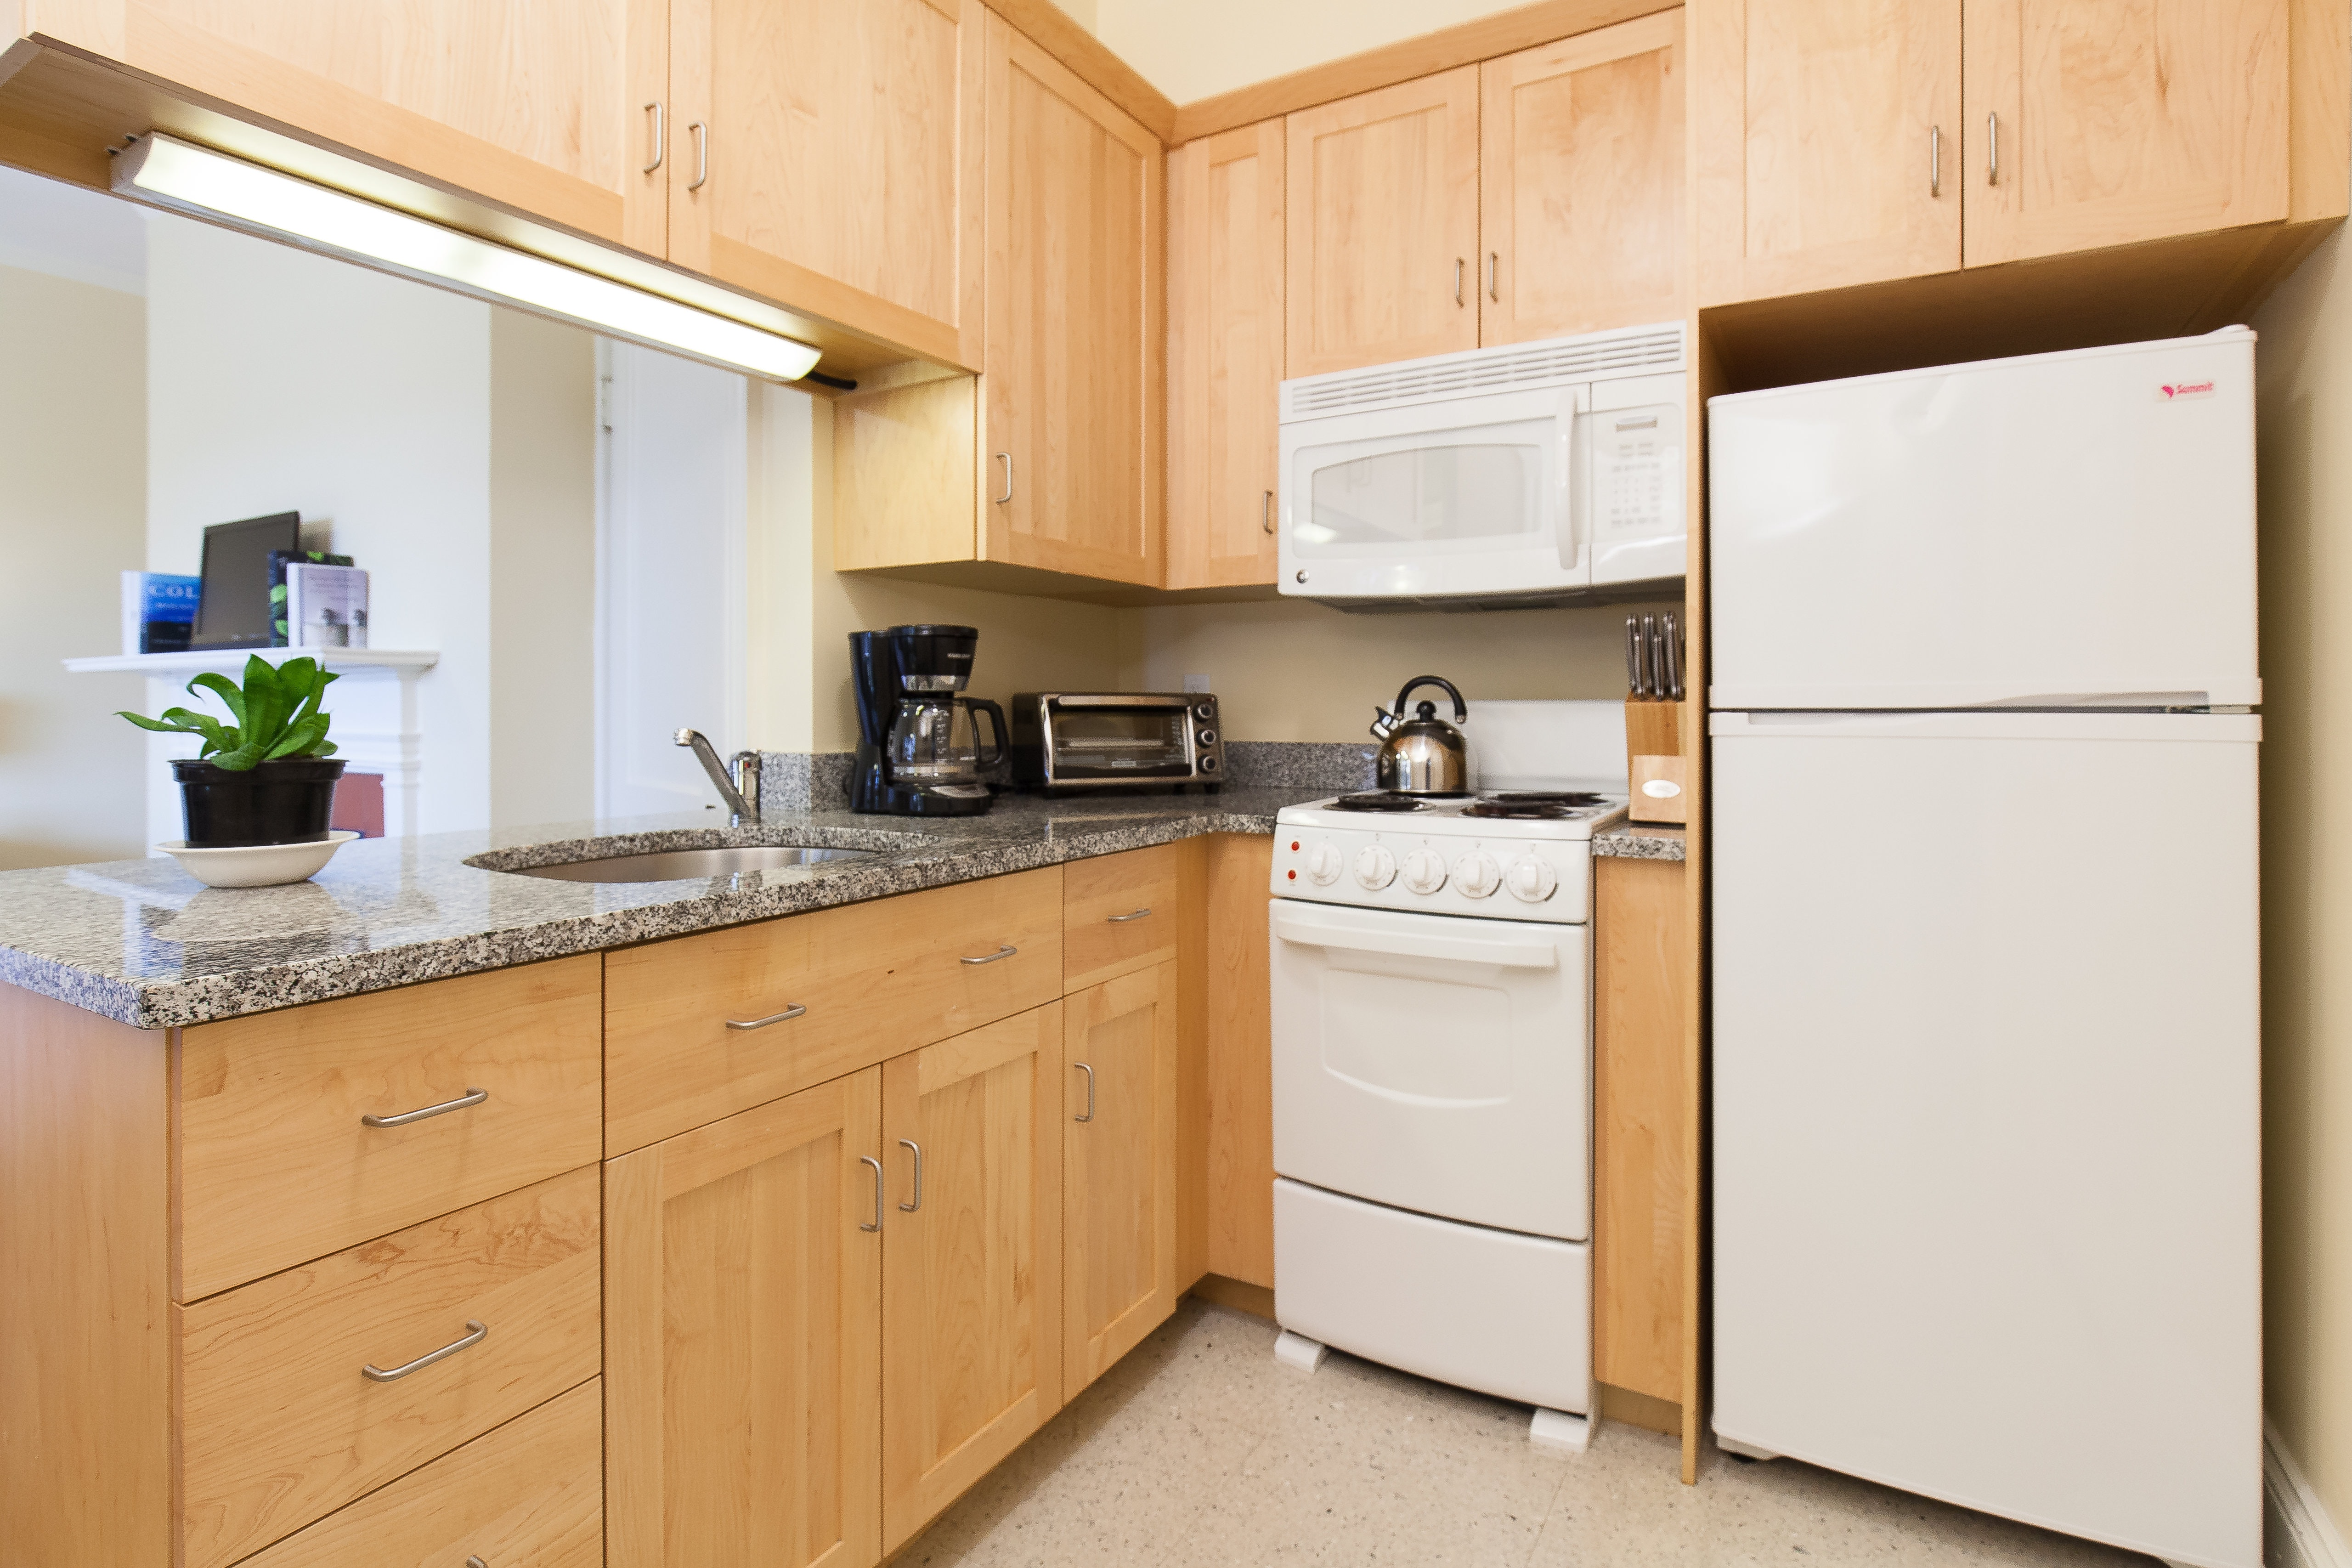 Kitchen in 83 Brattle Street studio apartment.